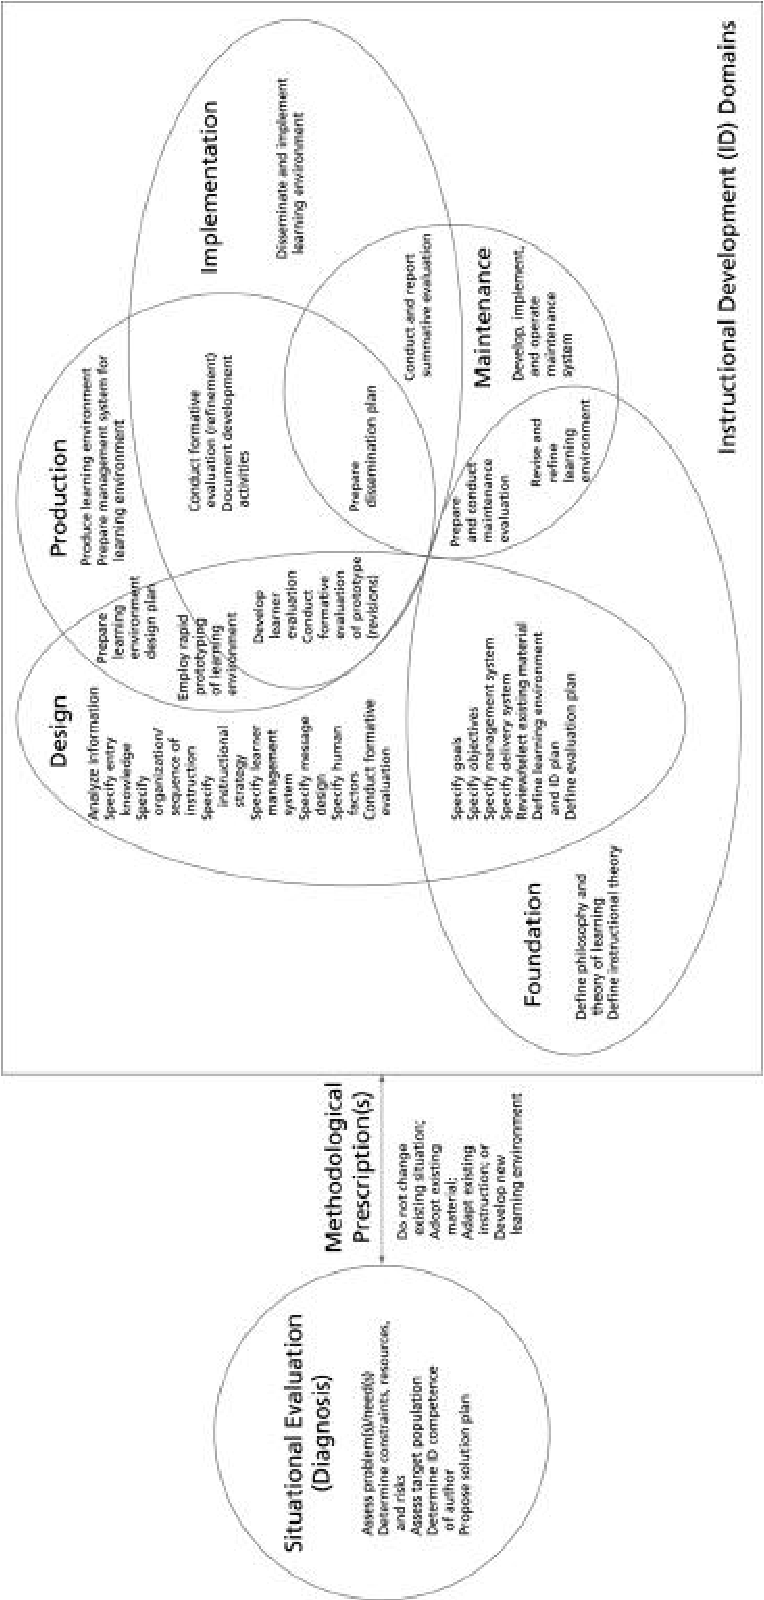 Figure 17 From Towards An Object Oriented Instructional Design Model 1 Defining Instructional Design In General Instructional Design Describes A Set Of Procedures That Guides Authors In The Systematic Process Of Designing Instructional